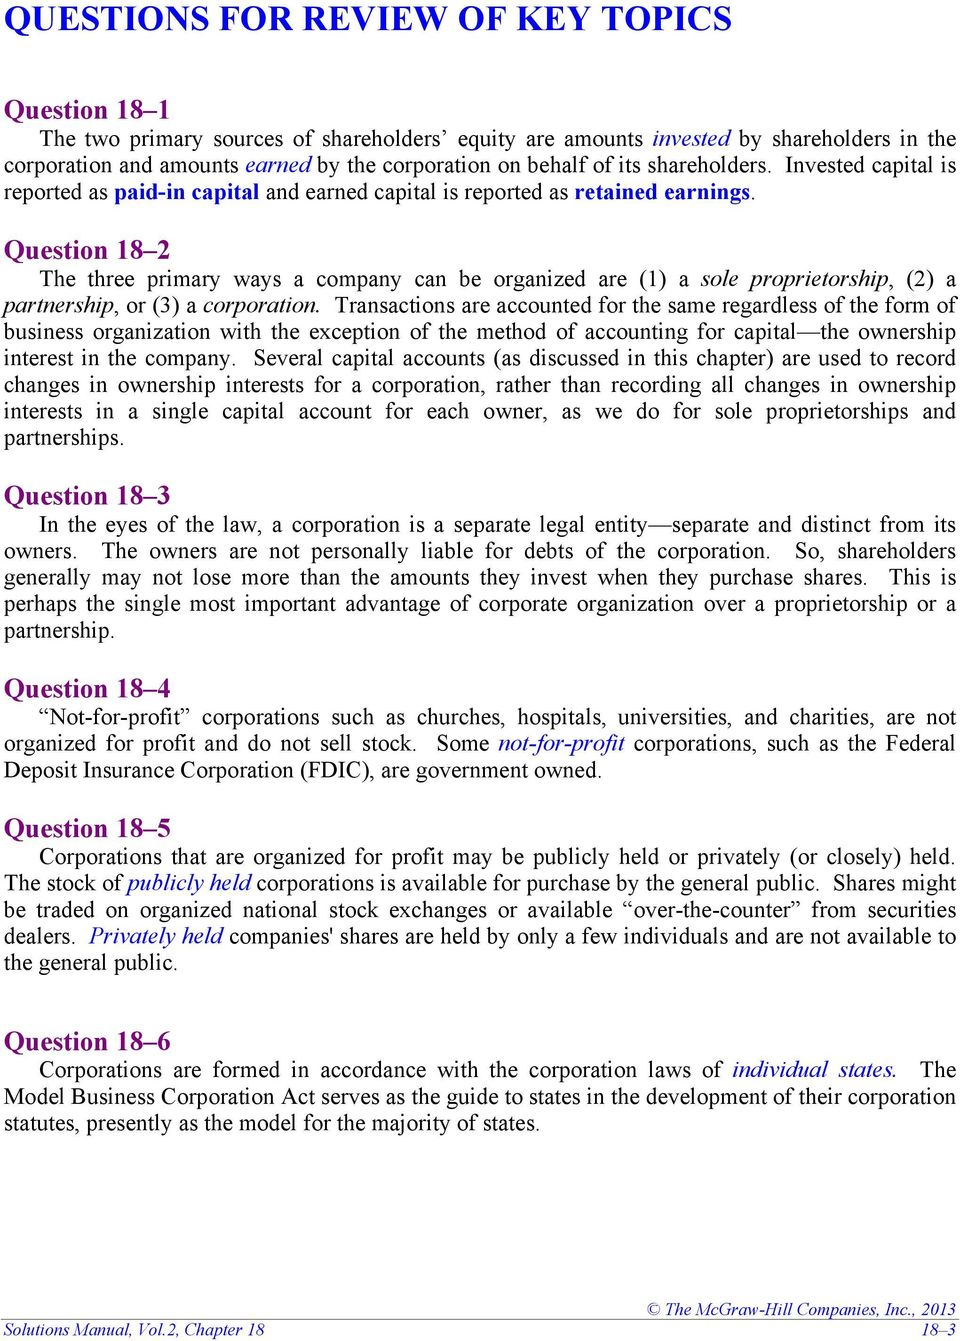 Solutions Manual, Vol.2, Chapter. Question 18 2 The three primary ways a  company can be organized are (1)